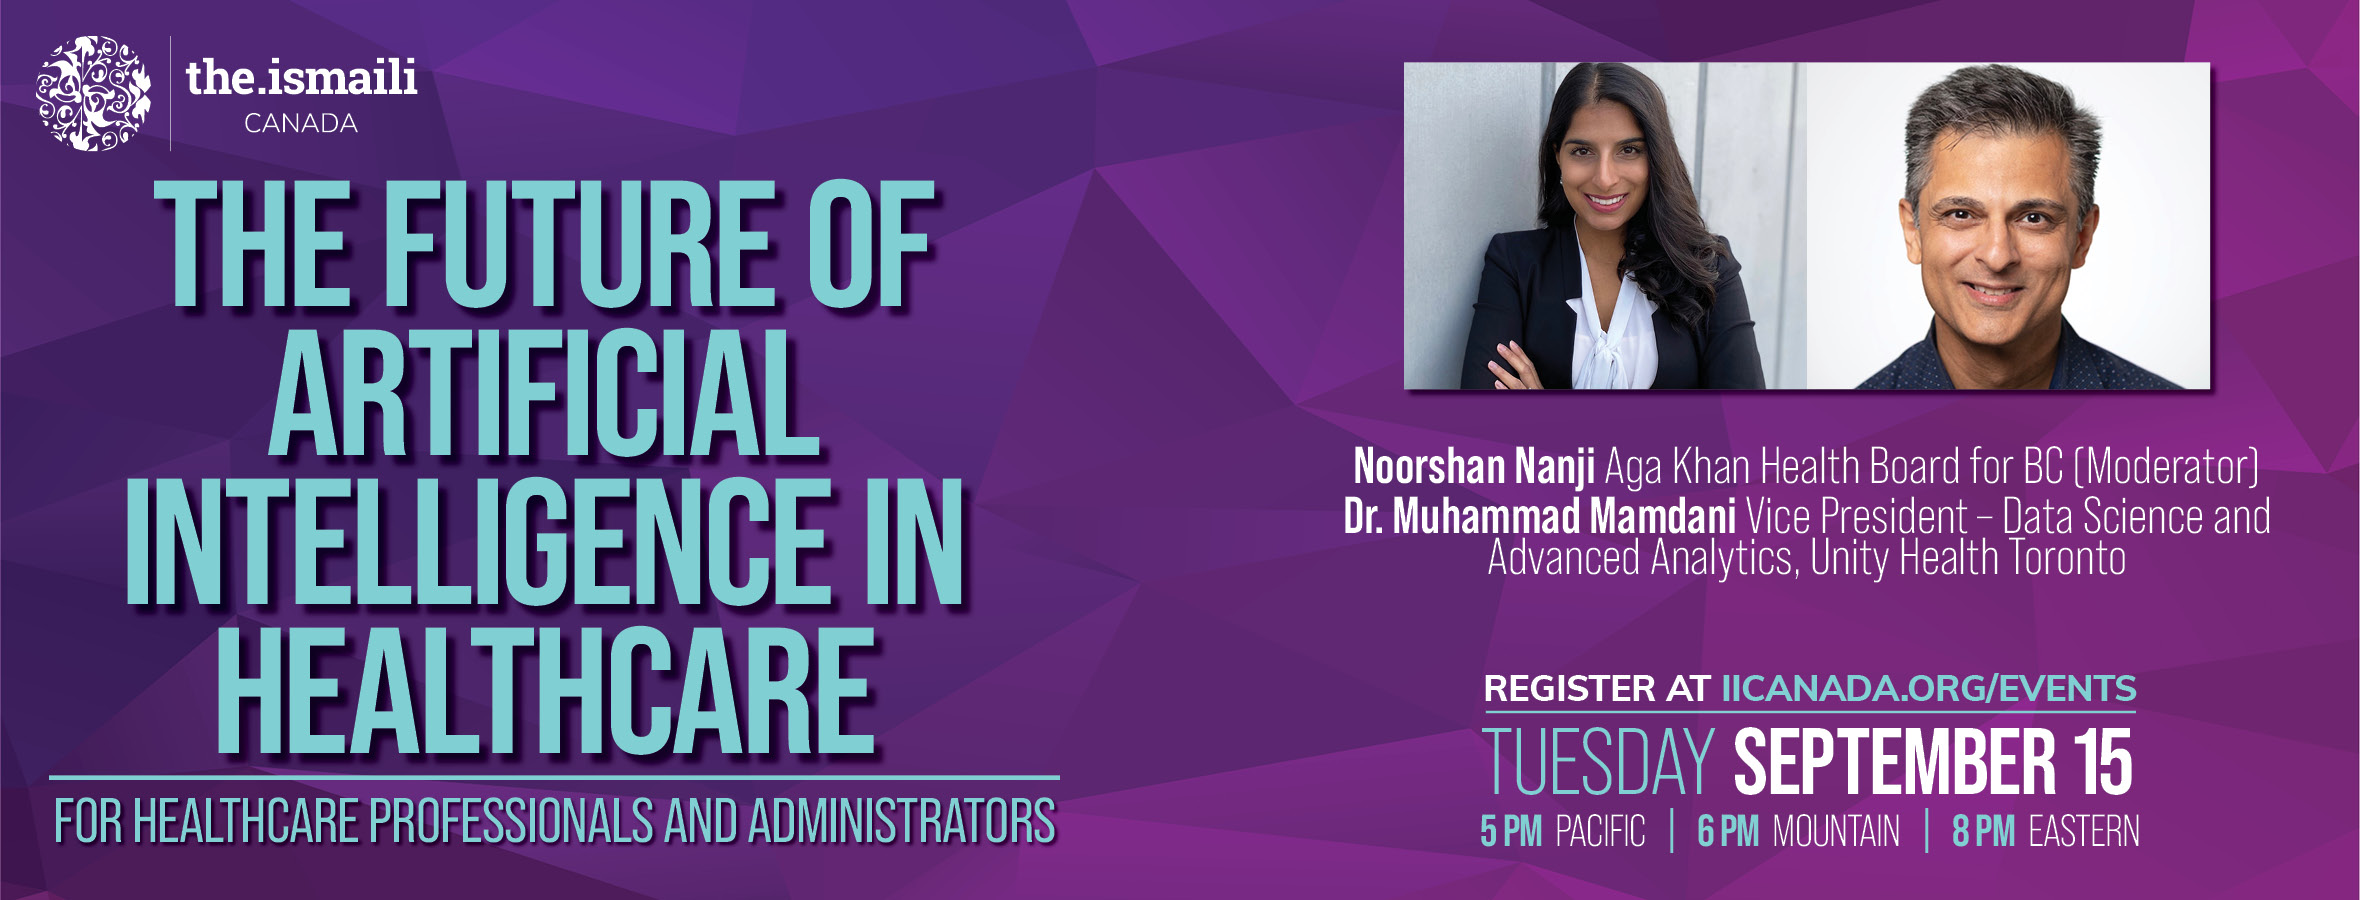 The Application of Artificial Intelligence in Healthcare: Implications for Healthcare Professionals and Administrators